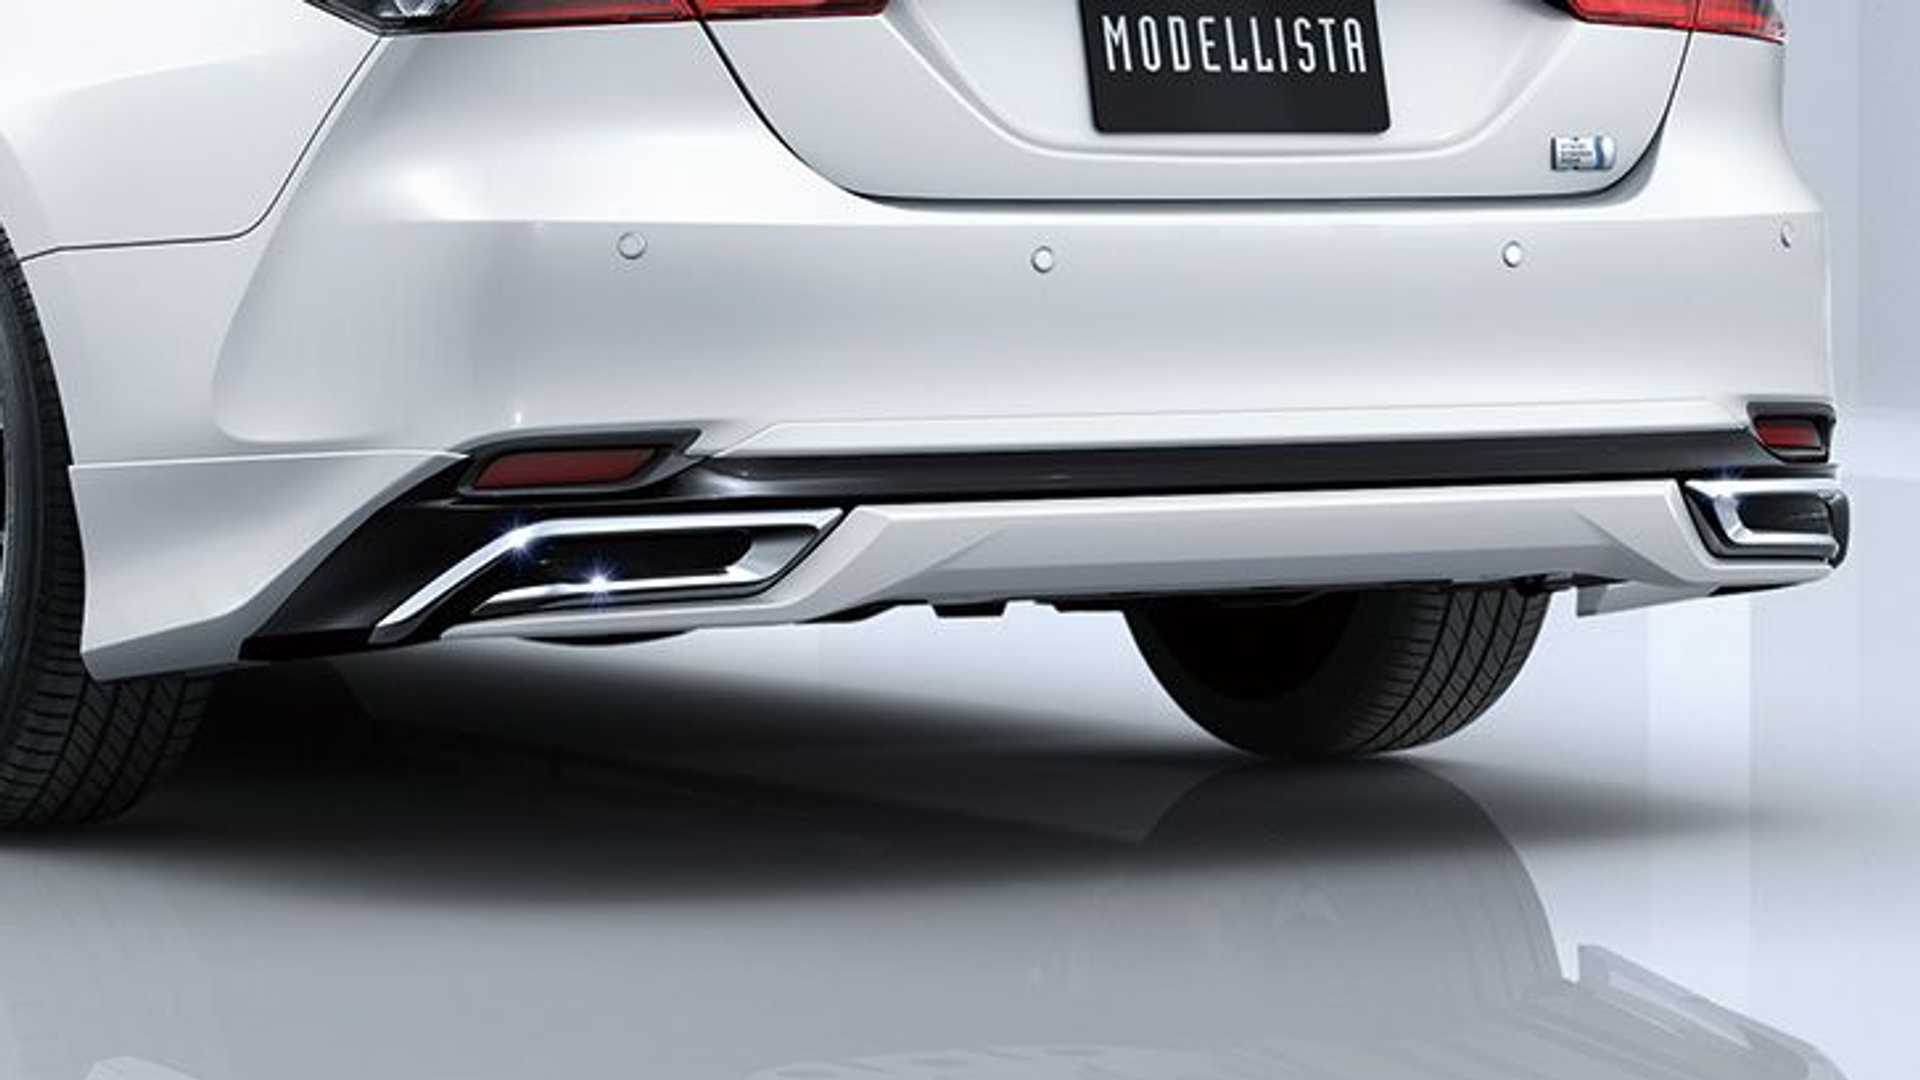 toyota-camry-modellista-exhaust-finisher